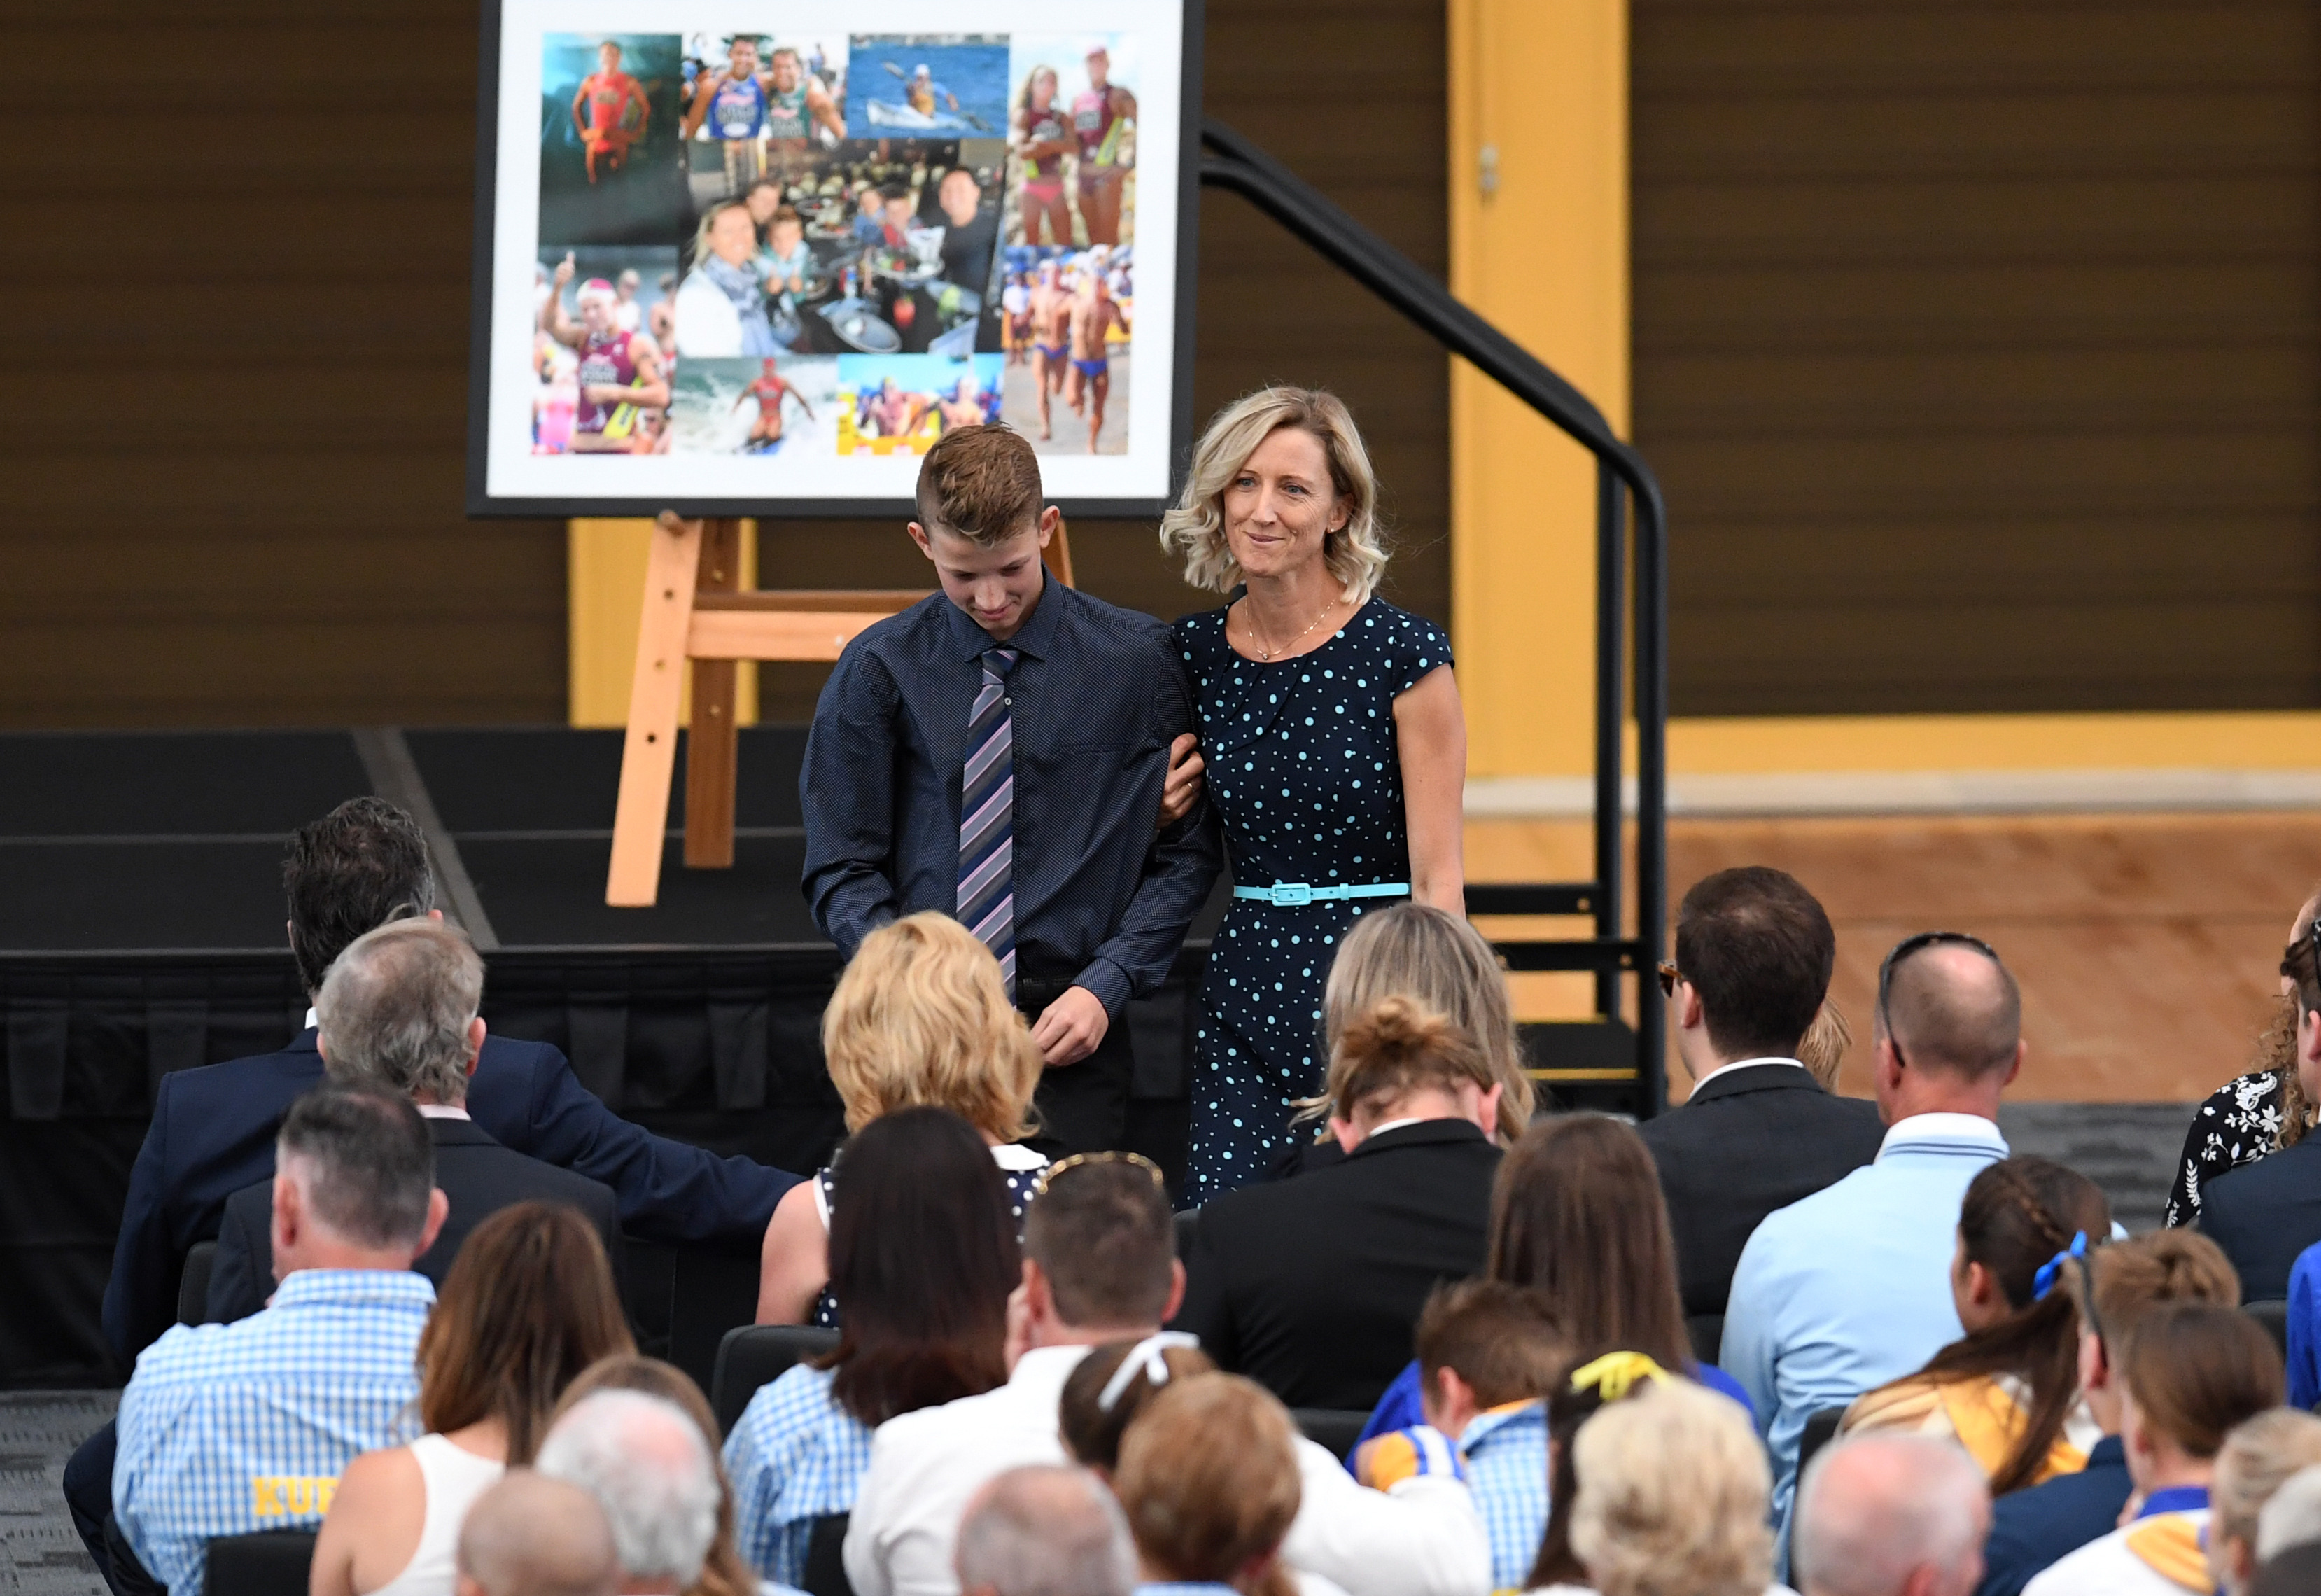 Reen Mercer and her son Brayden read a tribute during a memorial service for their husband and father Dean Mercer on the Gold Coast. (AAP)